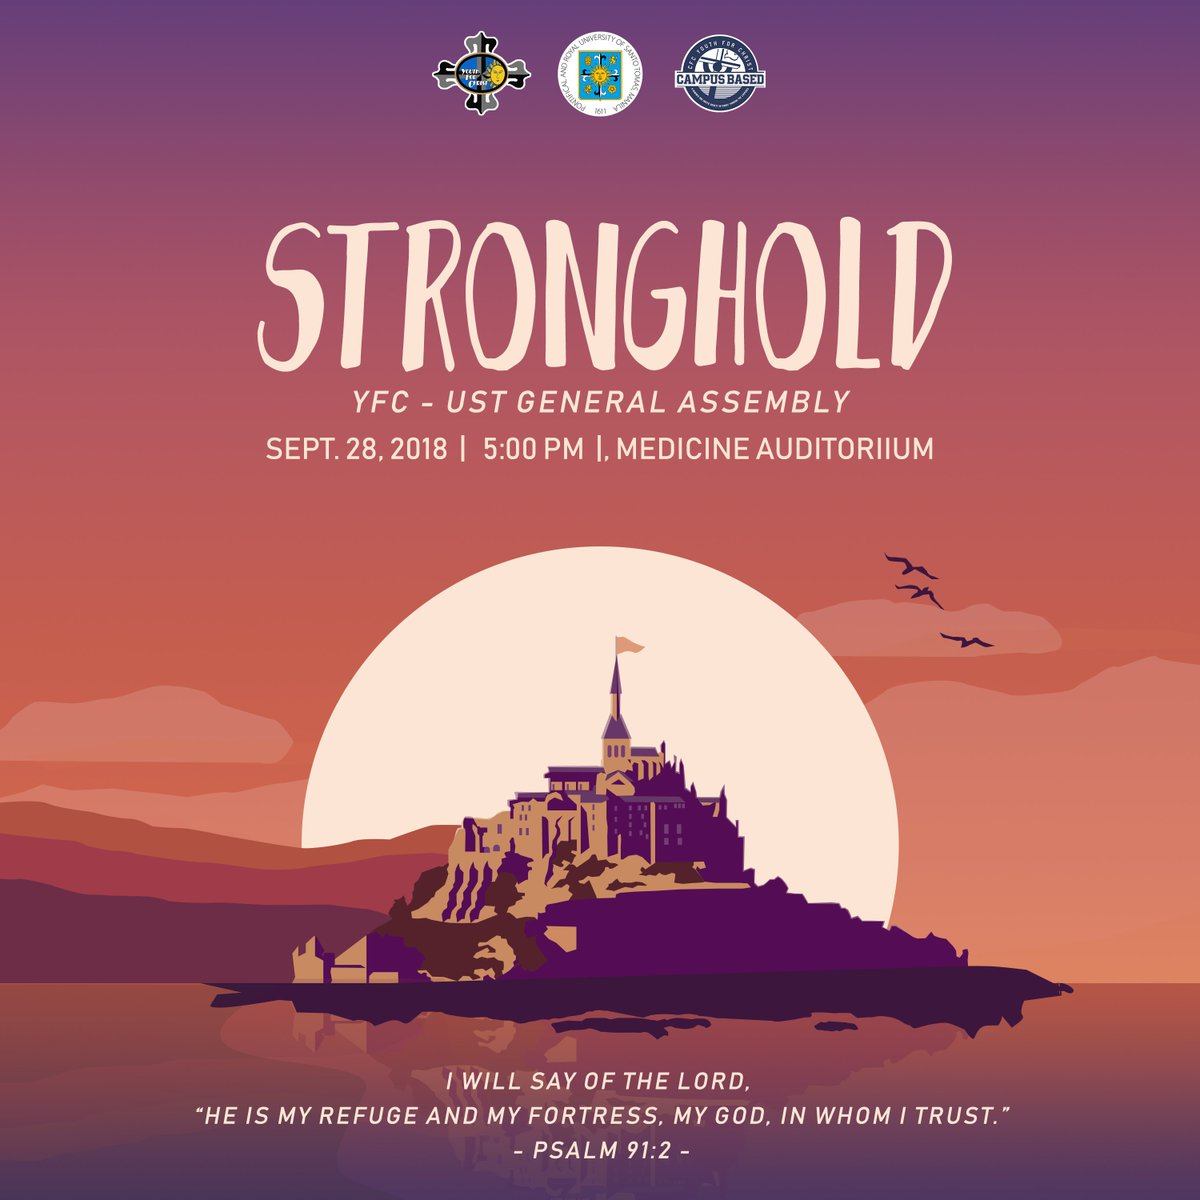 """I will say of the Lord, """"He is my refuge and my fortress, my God, in whom I trust."""" – Psalm 91:2  As the sun rises everyday, let us be reminded to make the Lord our Stronghold even in our darkest times.  See you there brothers and sisters!  #Stronghold #YFCUST25<br>http://pic.twitter.com/49GPS5zErR"""